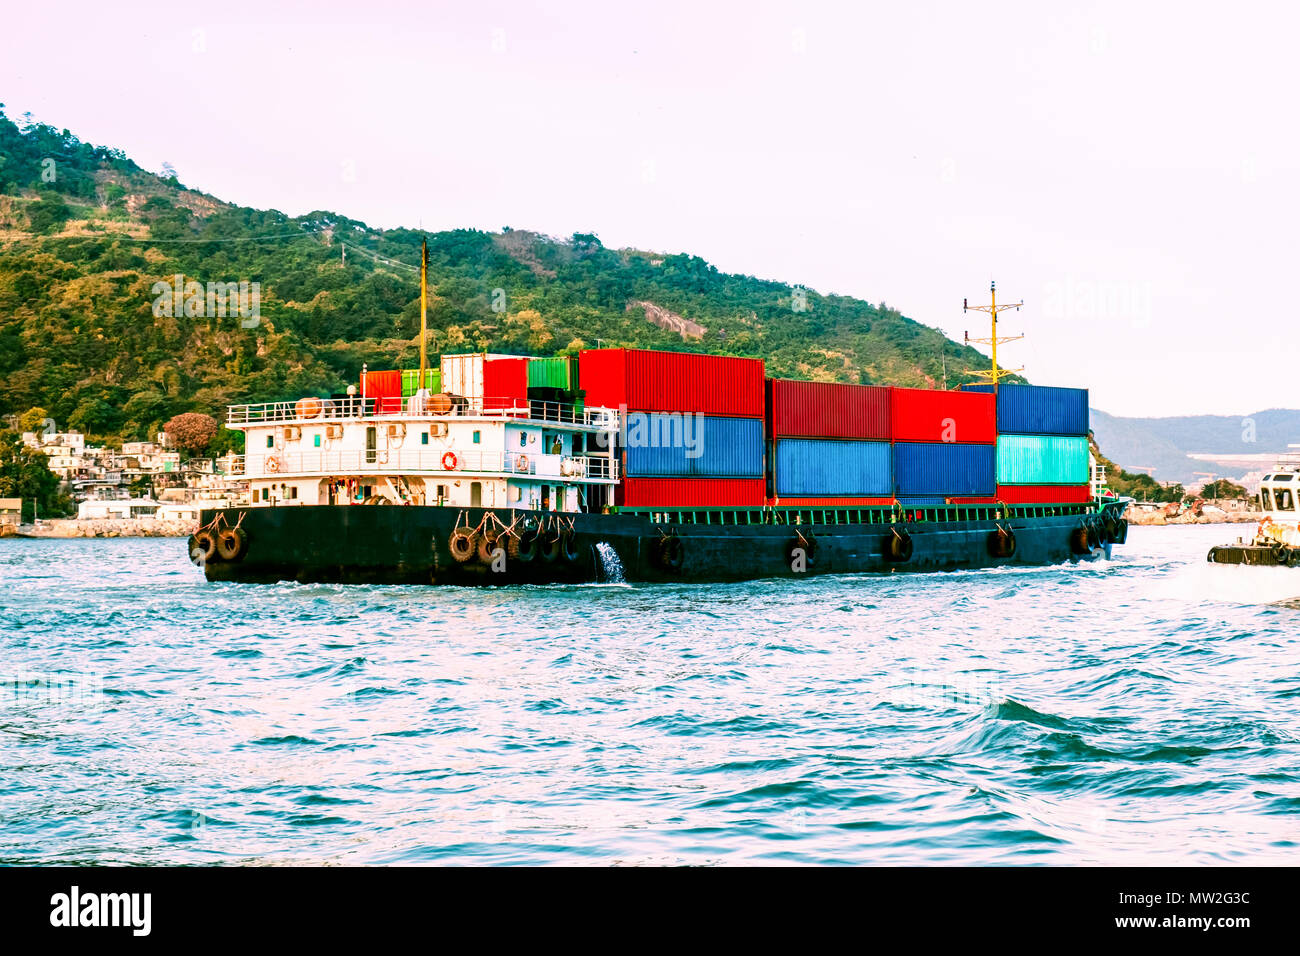 Large cargo nautical vessel in Victoria Harbor, Hong Kong at sunset. Business logistic, import, export concept. South China Sea, Pacific Ocean. Stock Photo